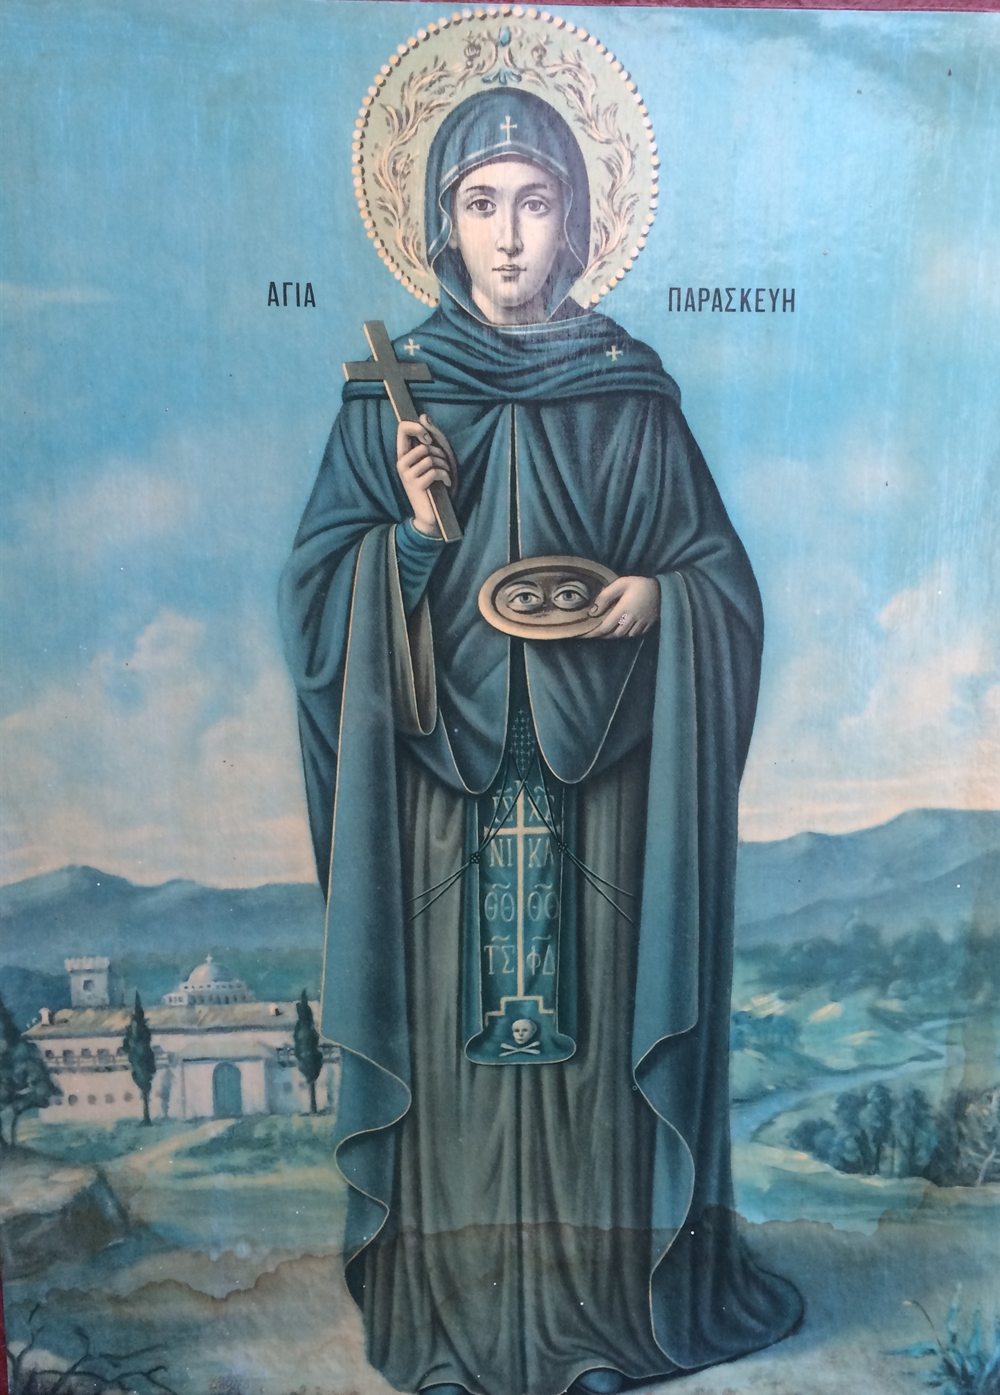 The theology of the icon and